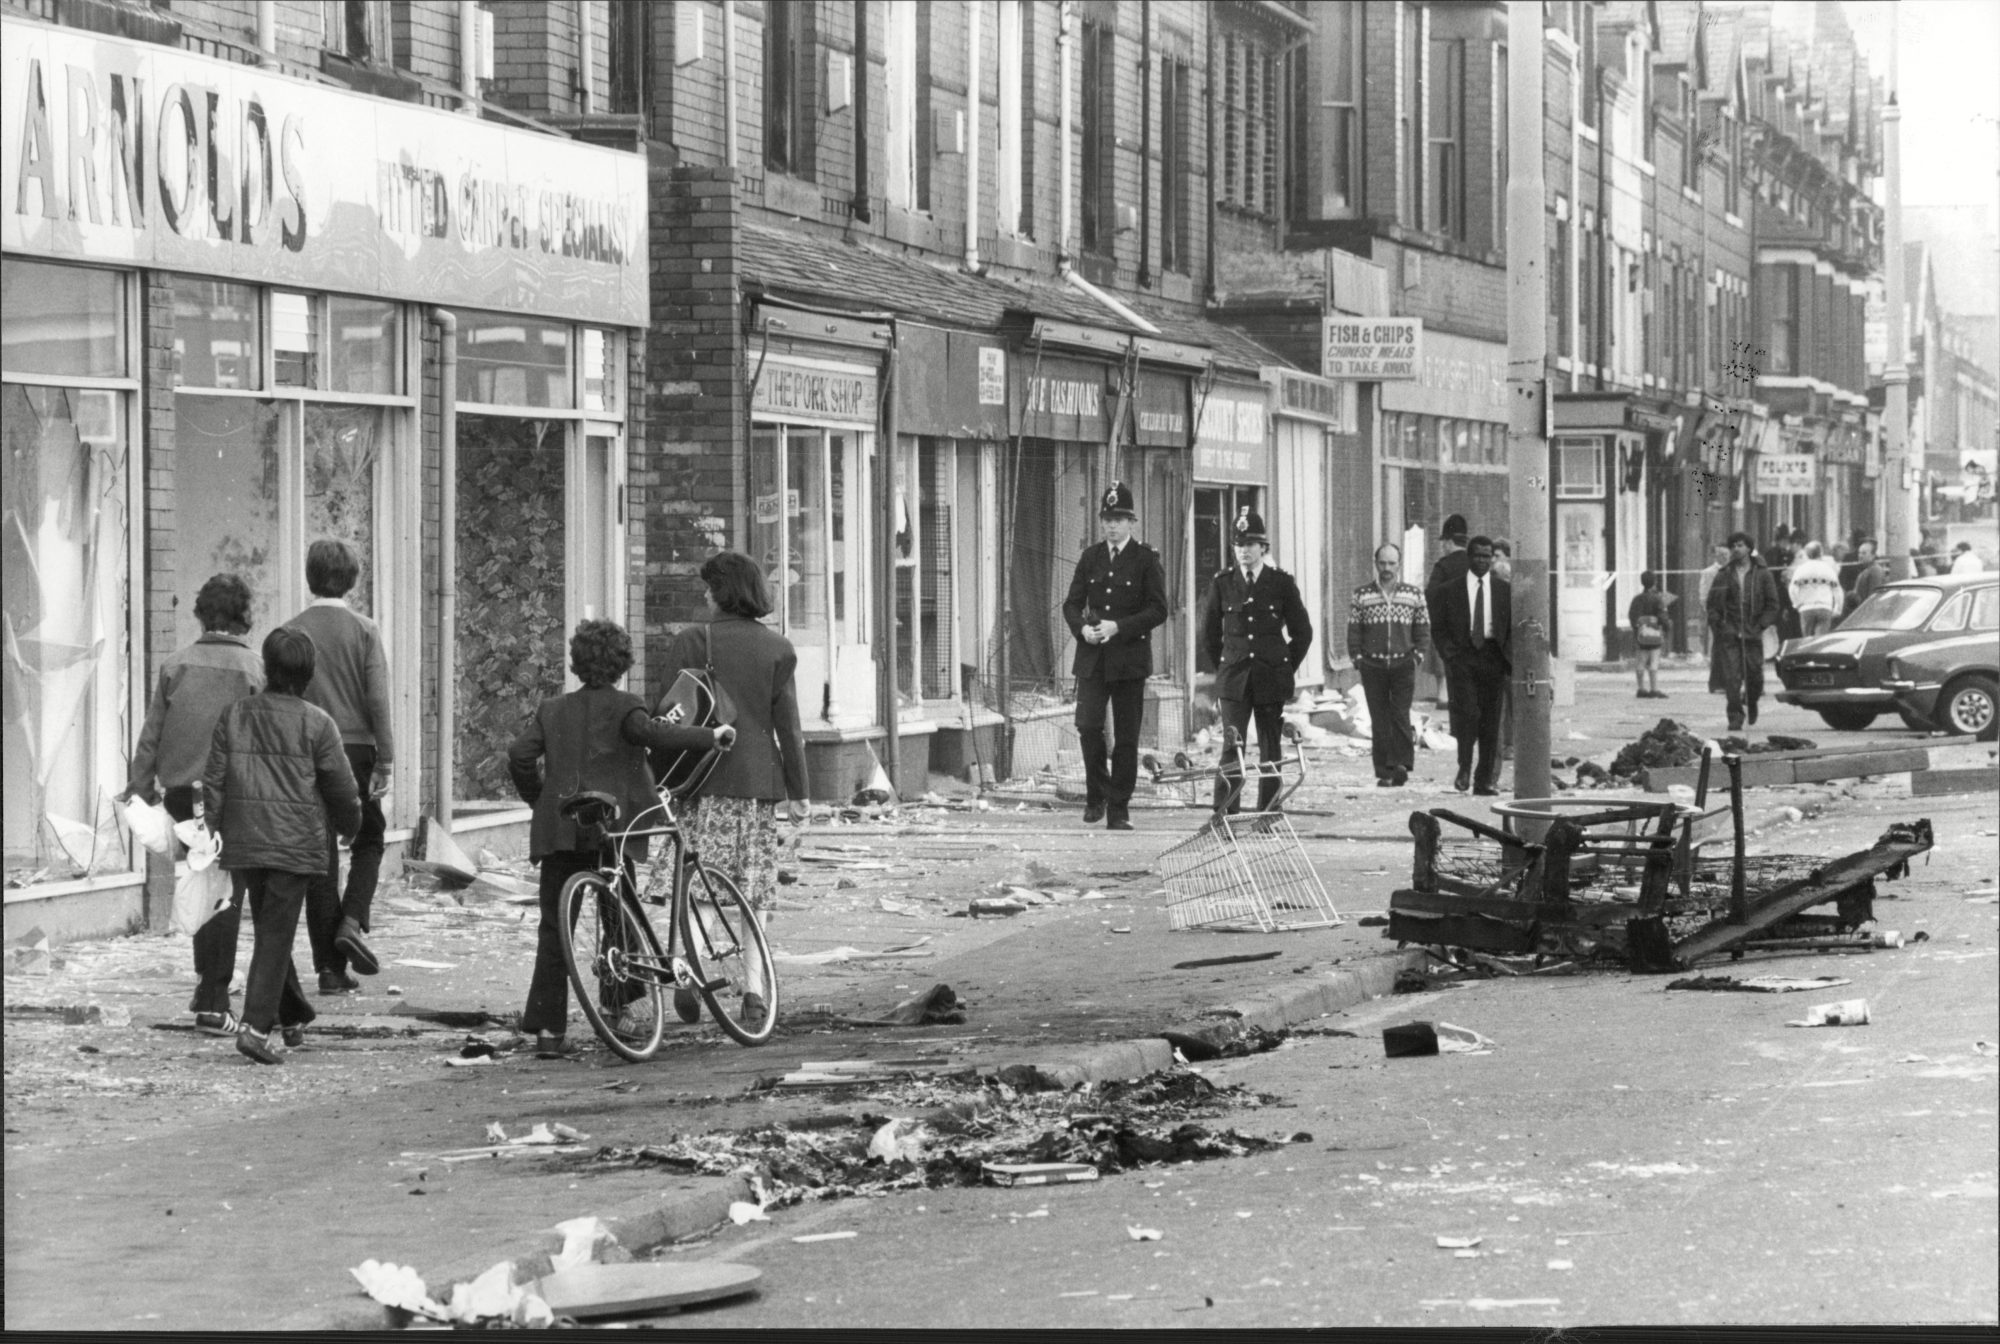 Still fighting to change system, 40 years after Manchester riots - channel 4